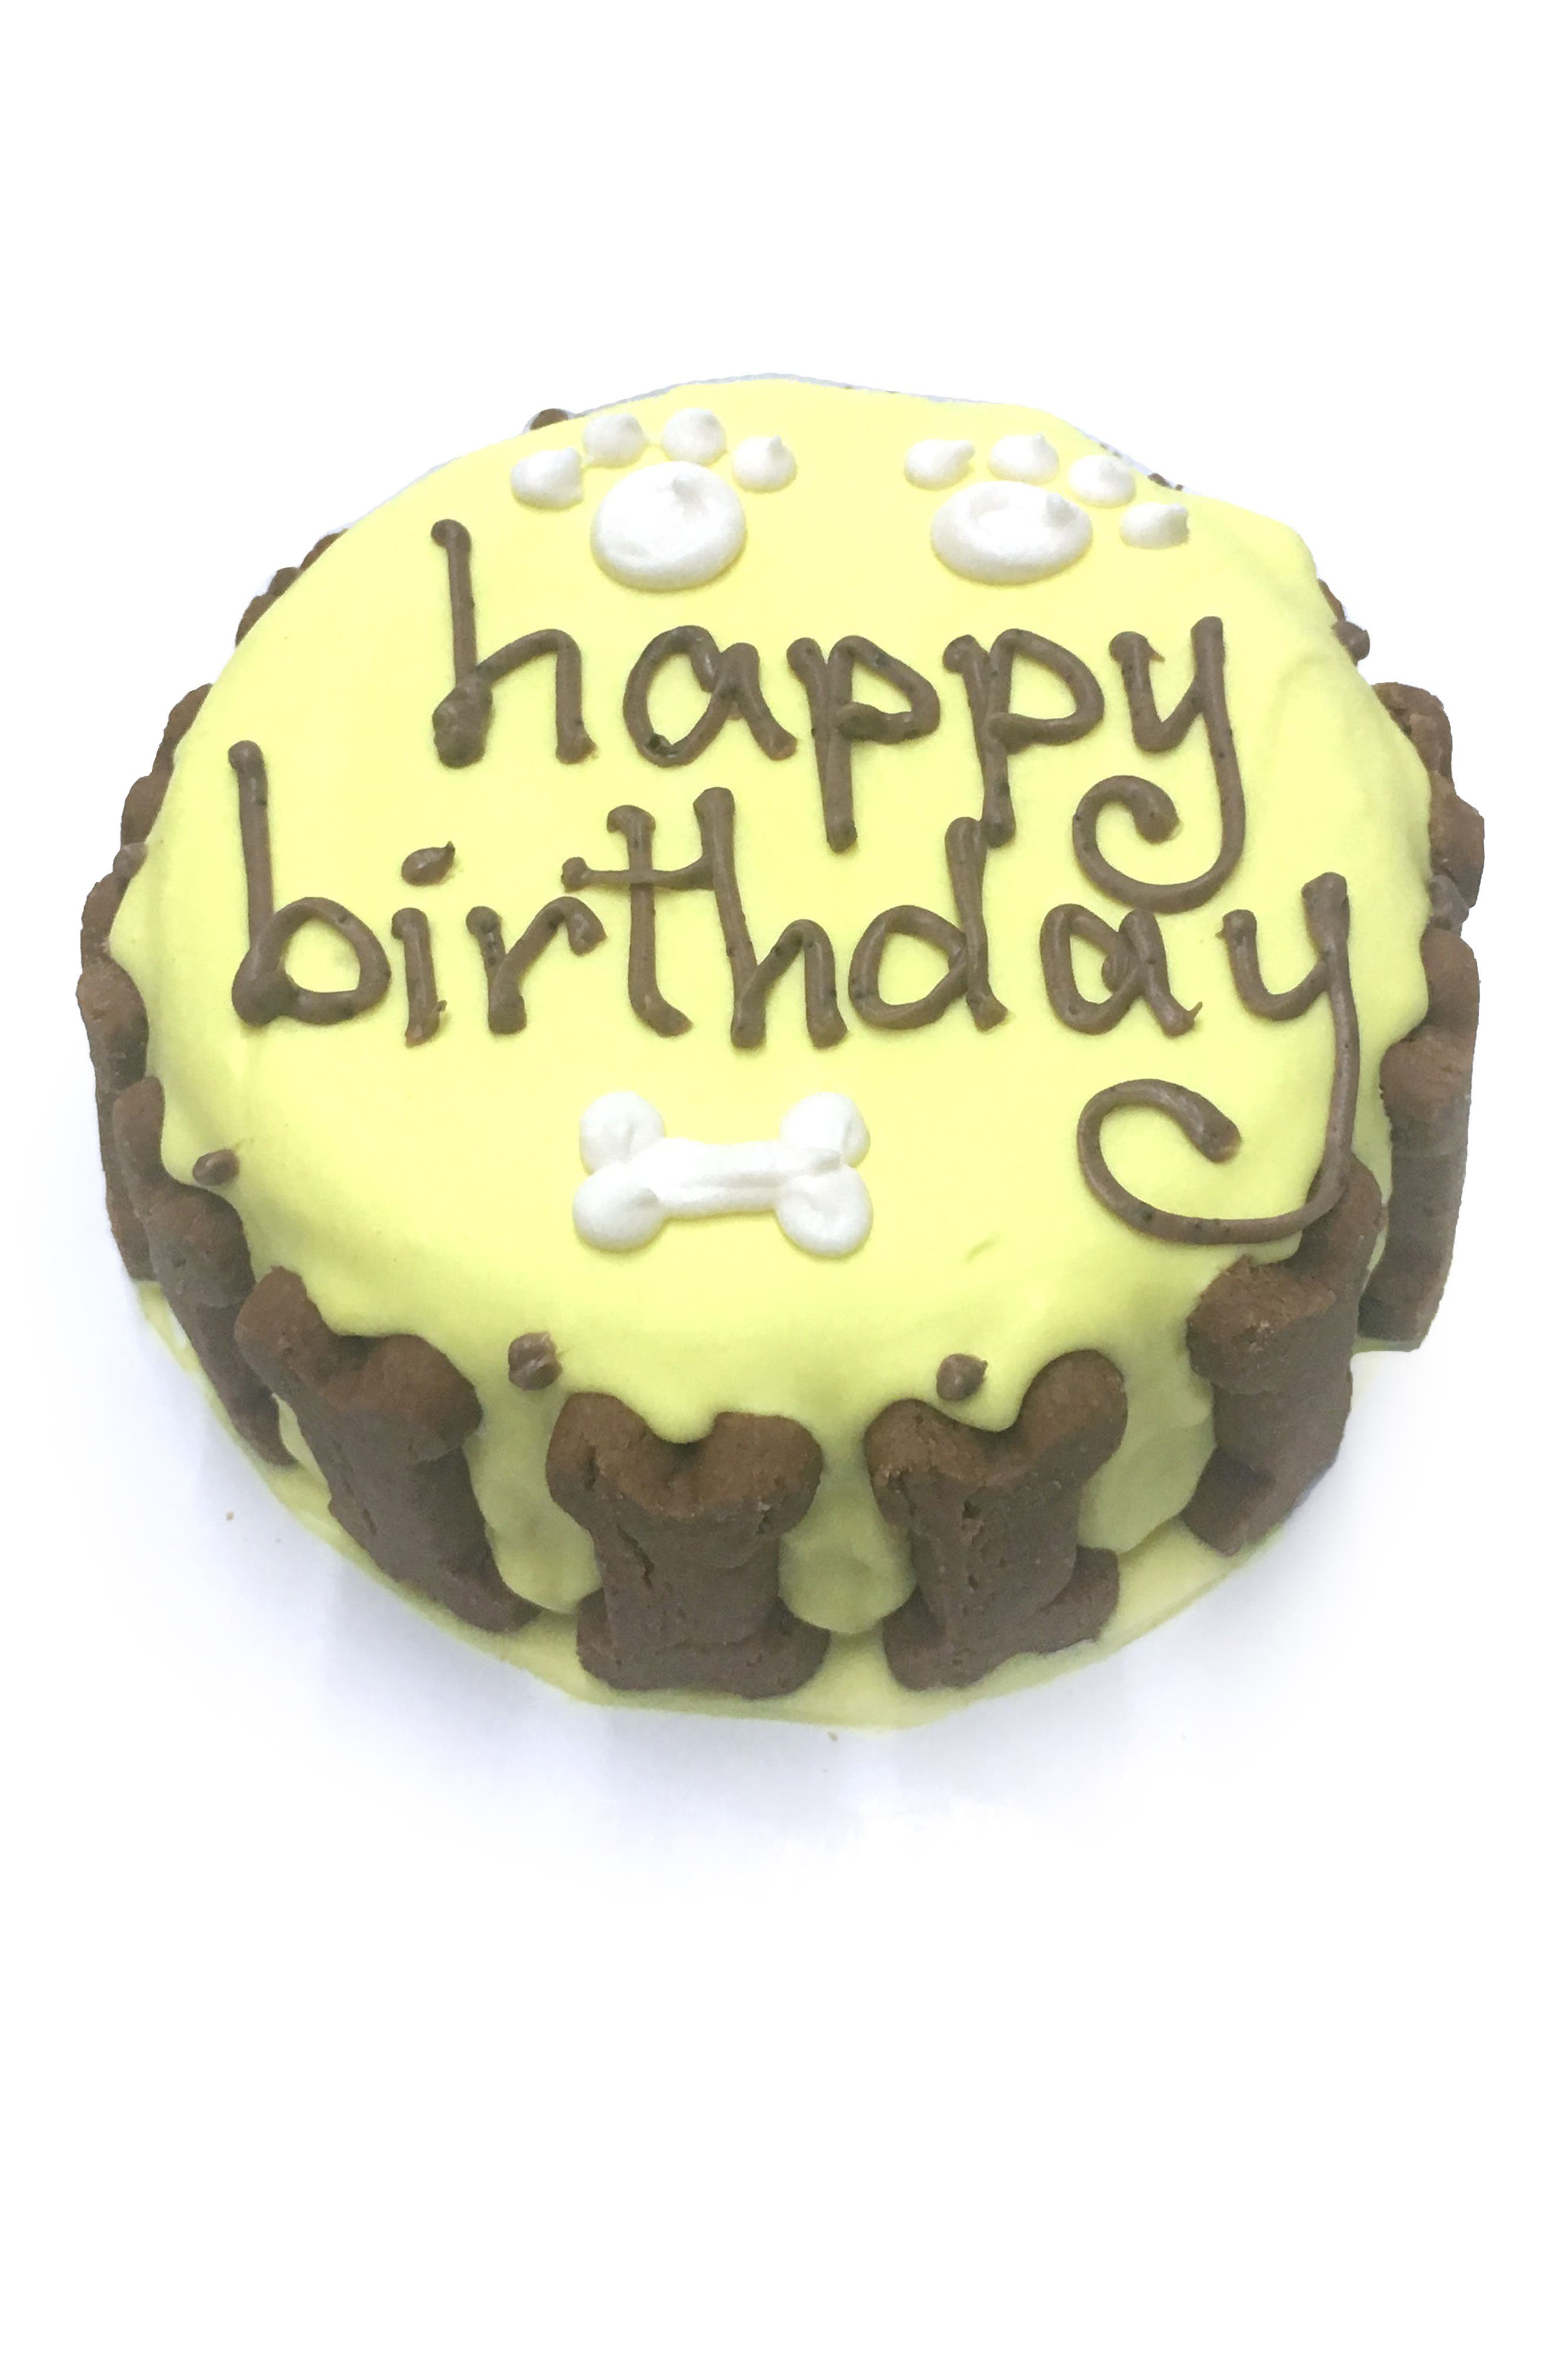 Bubba Rose Biscuit Company Yellow Classic Birthday Cake Dog Treat